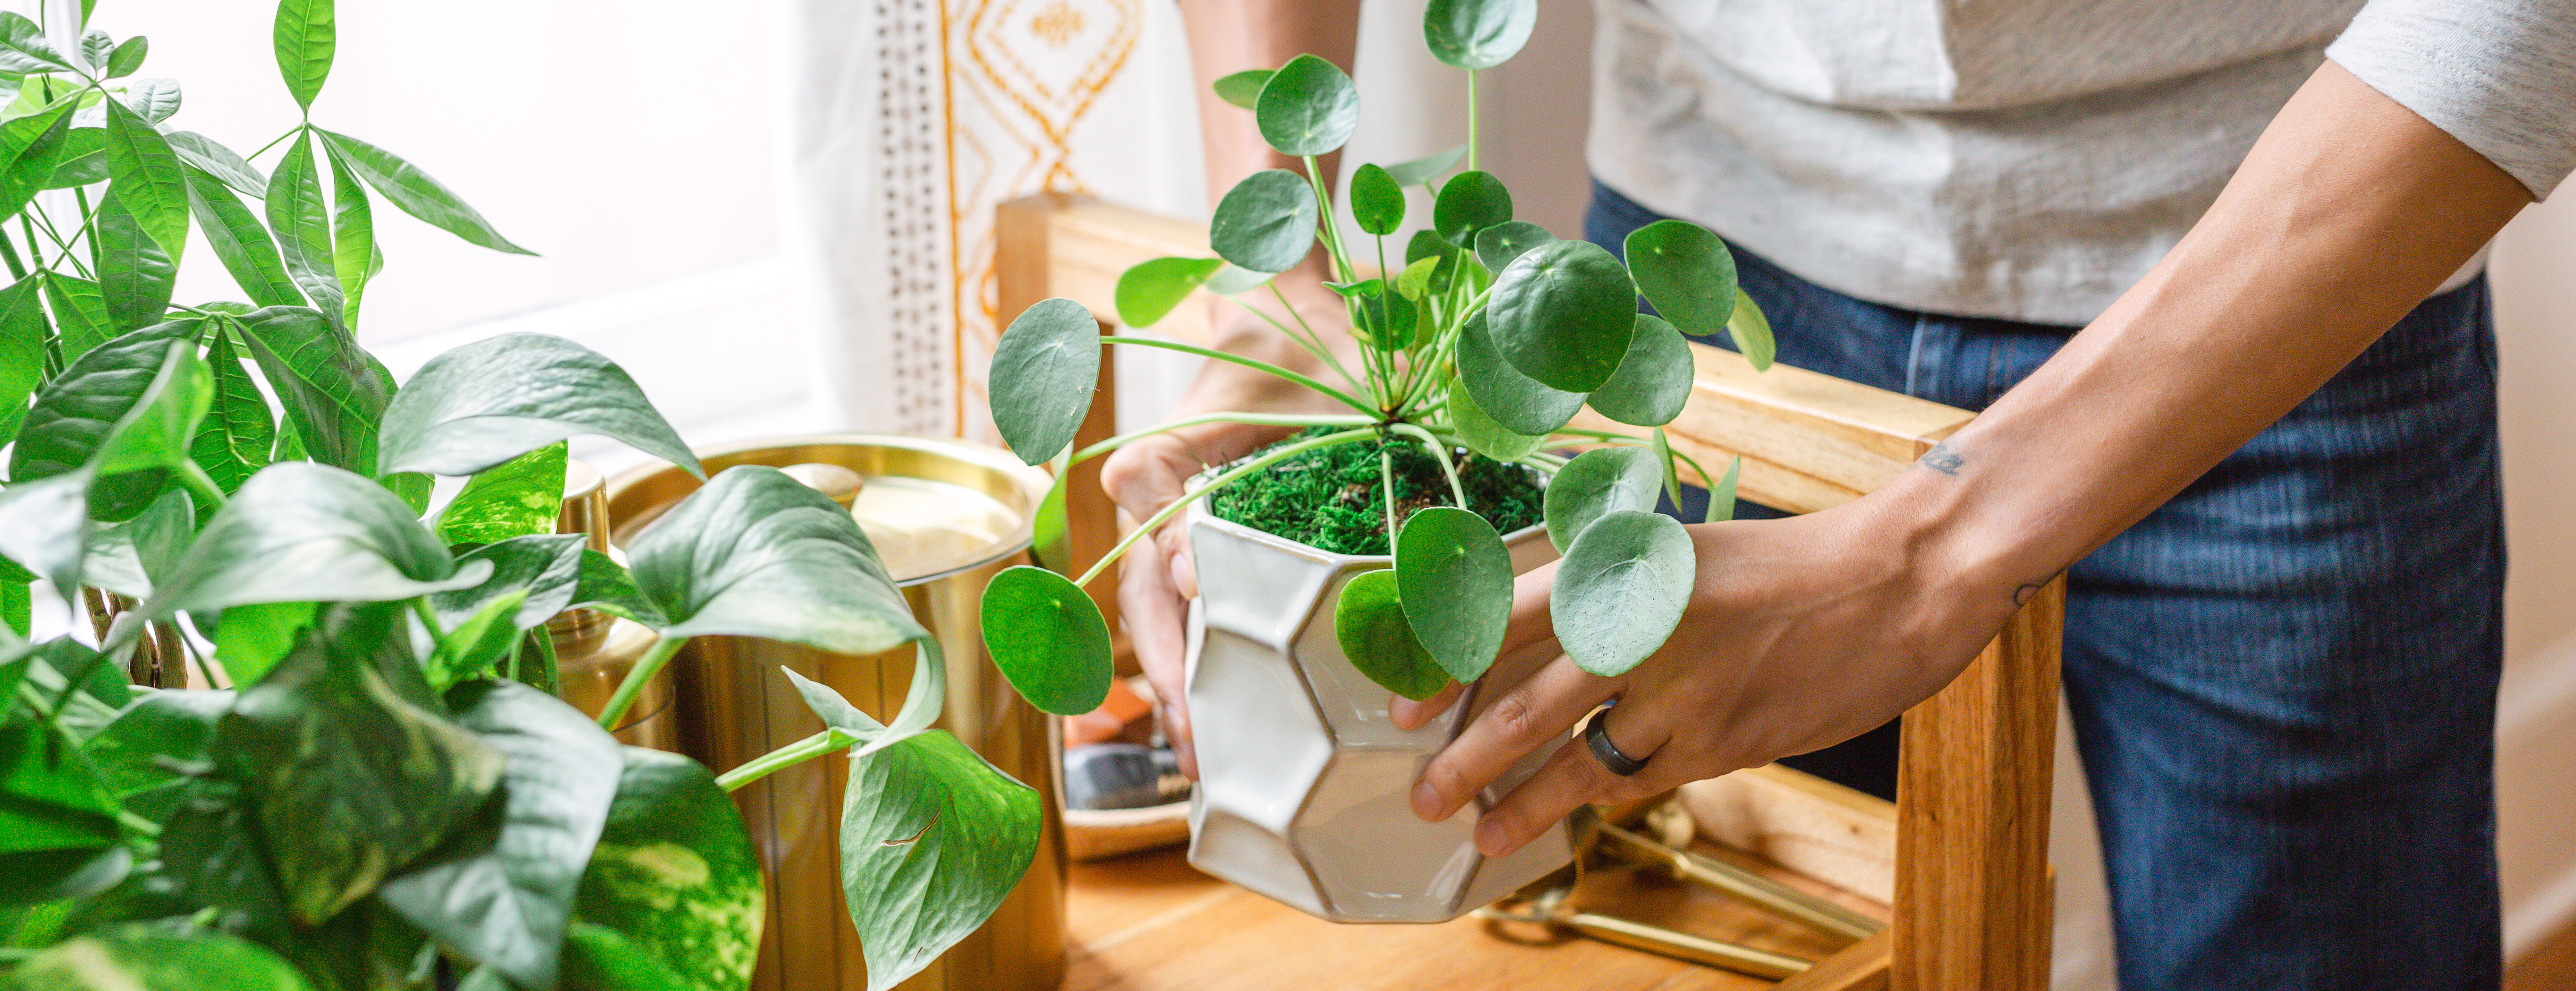 Hands and various indoor plants including a pothos plant and a pilea plant